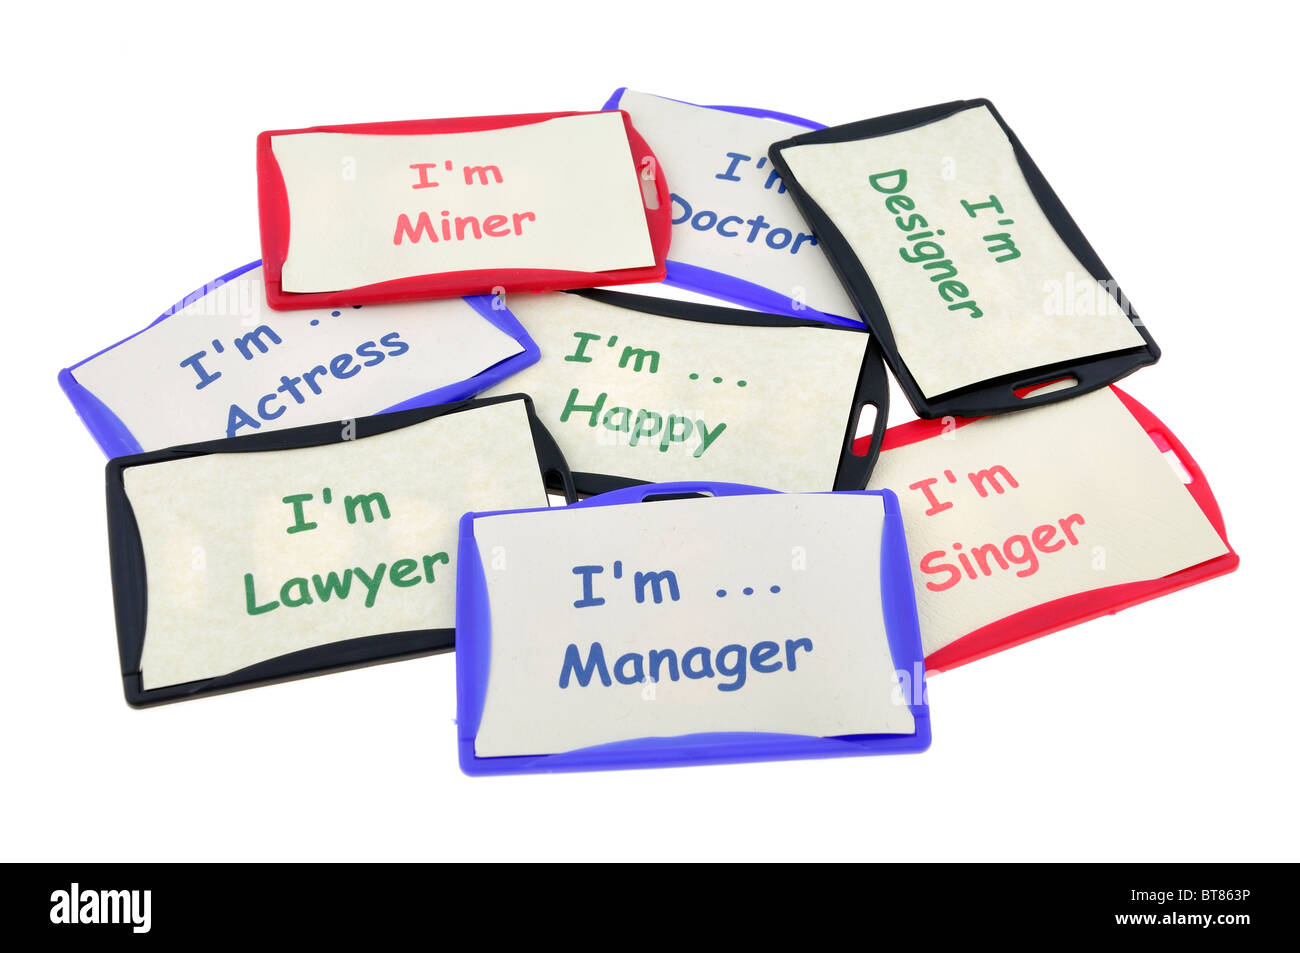 Professional identification cards - Stock Image